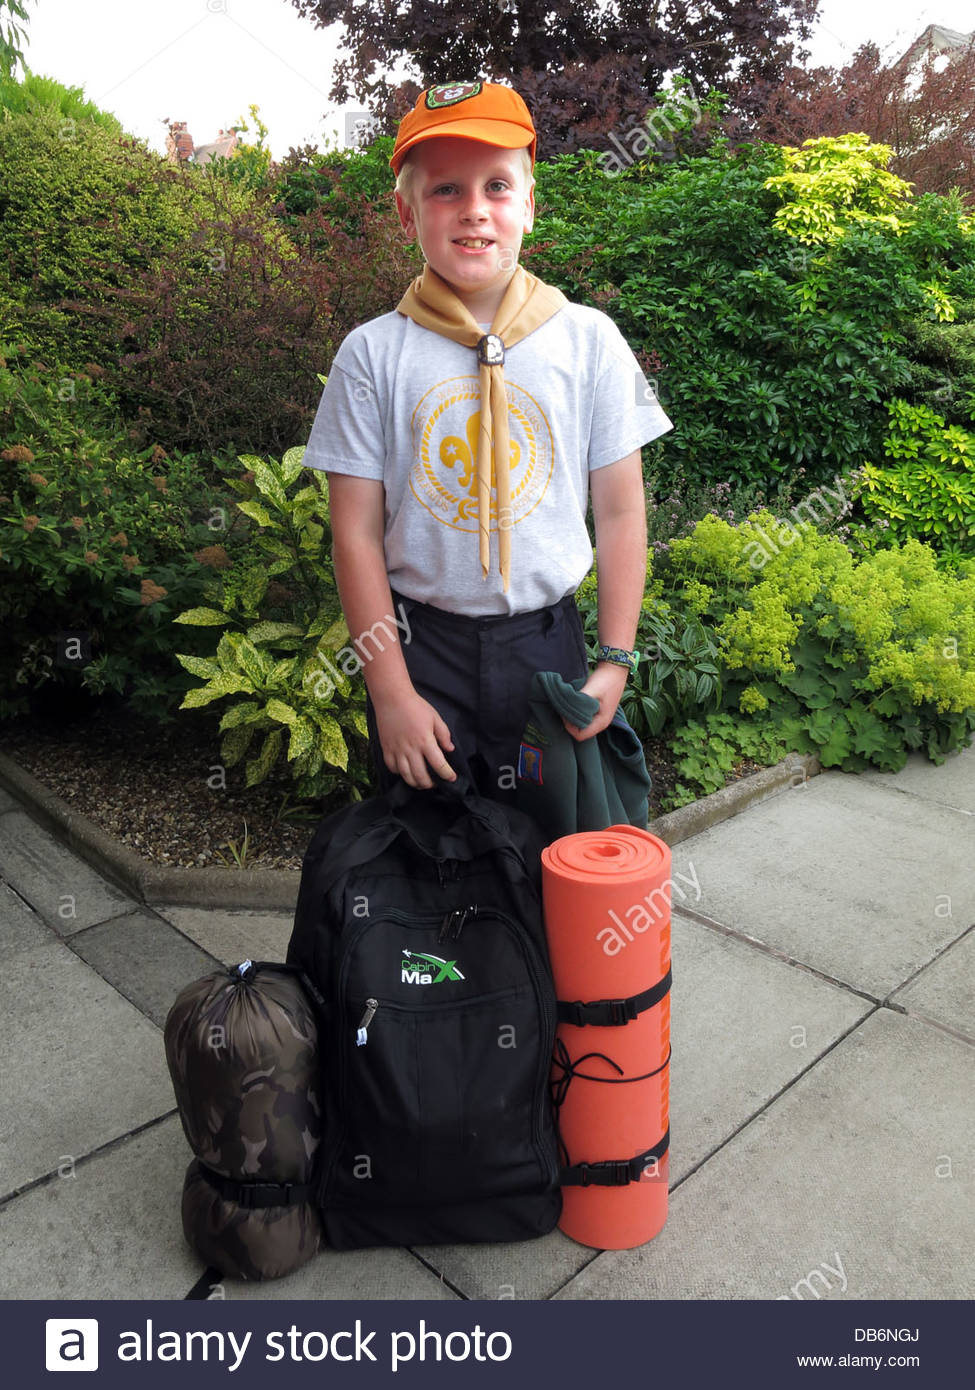 A nine year old cub ready for his summer scout camp in Grappenhall, Cheshire UK - Stock Image